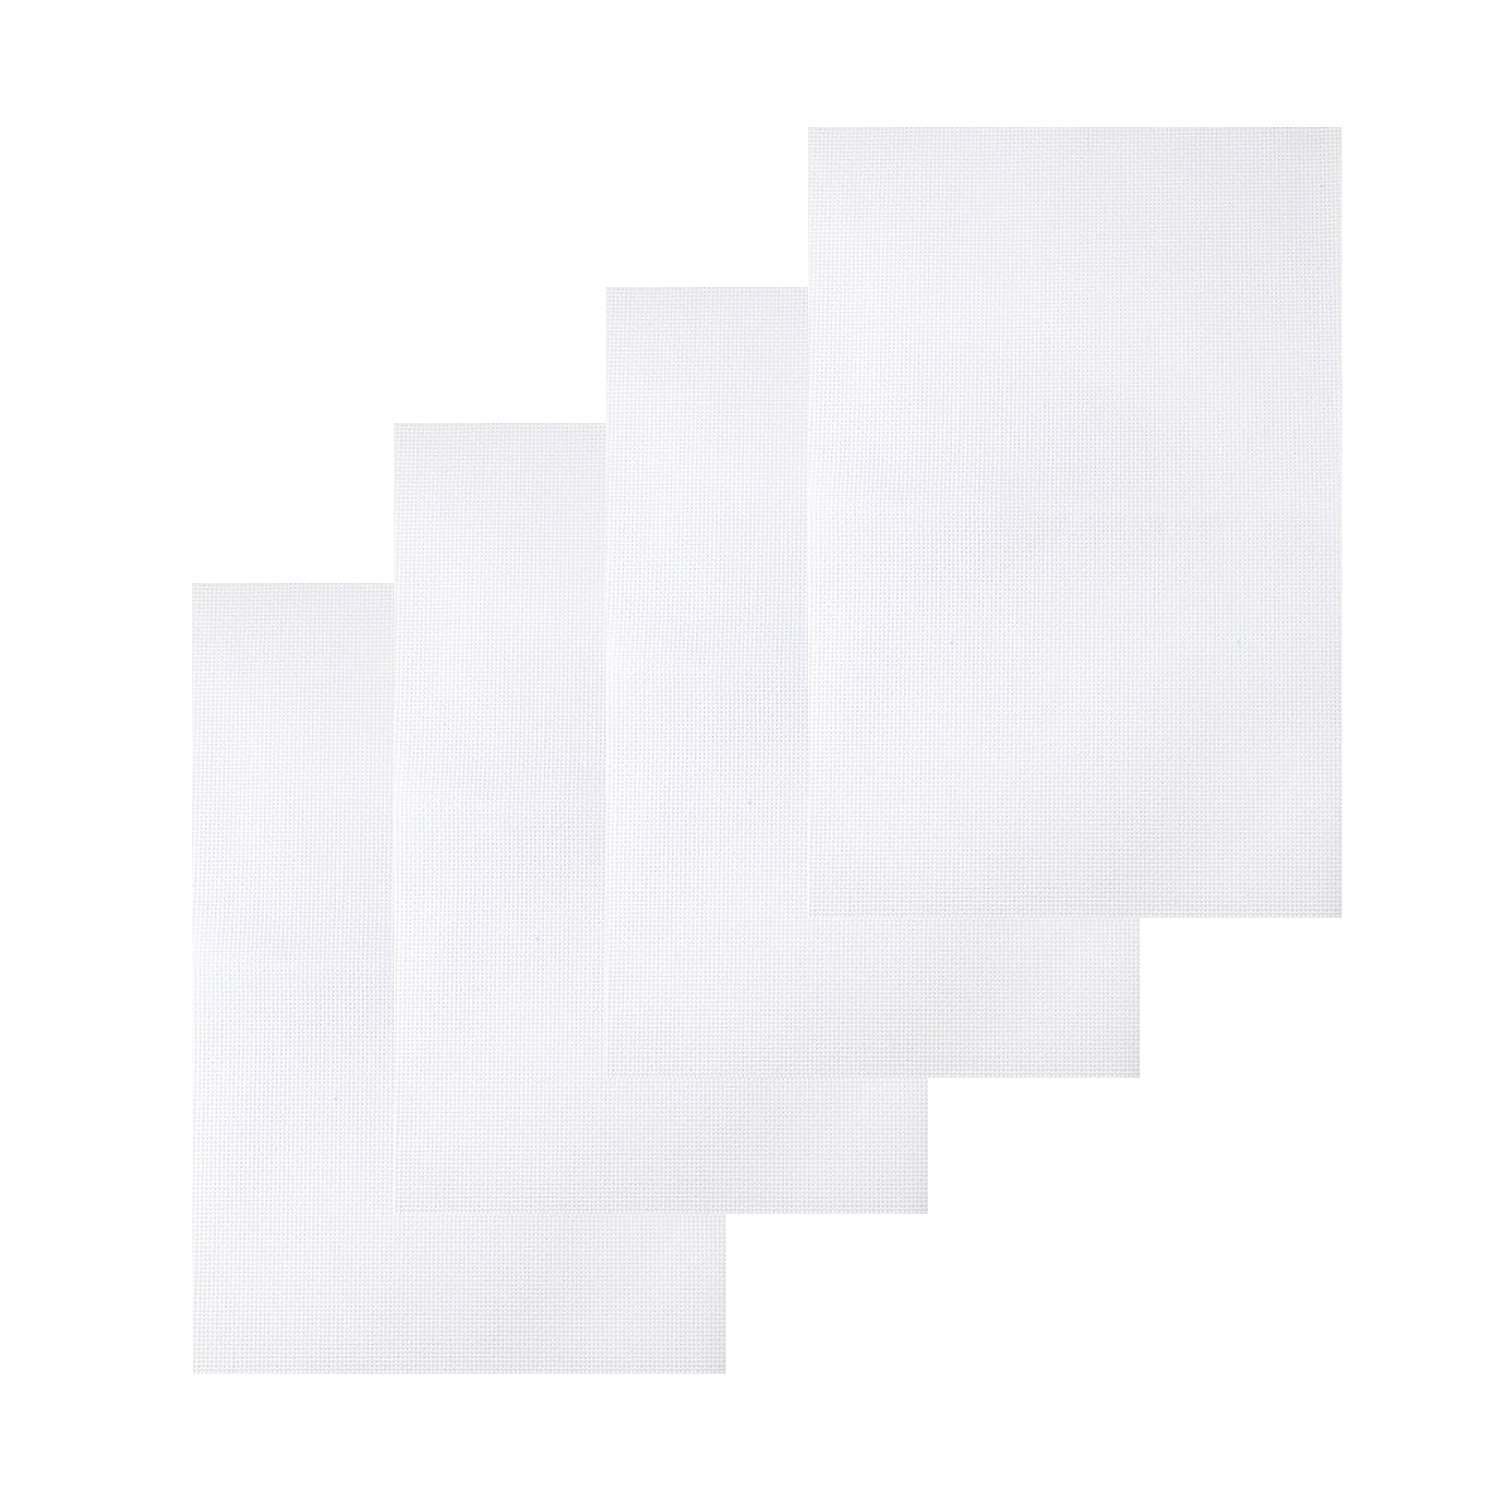 Onepine 4 Pieces 12 by 18 Embroidery cloth Classic Reserve Aida Cloth Cross Stitch Cloth White